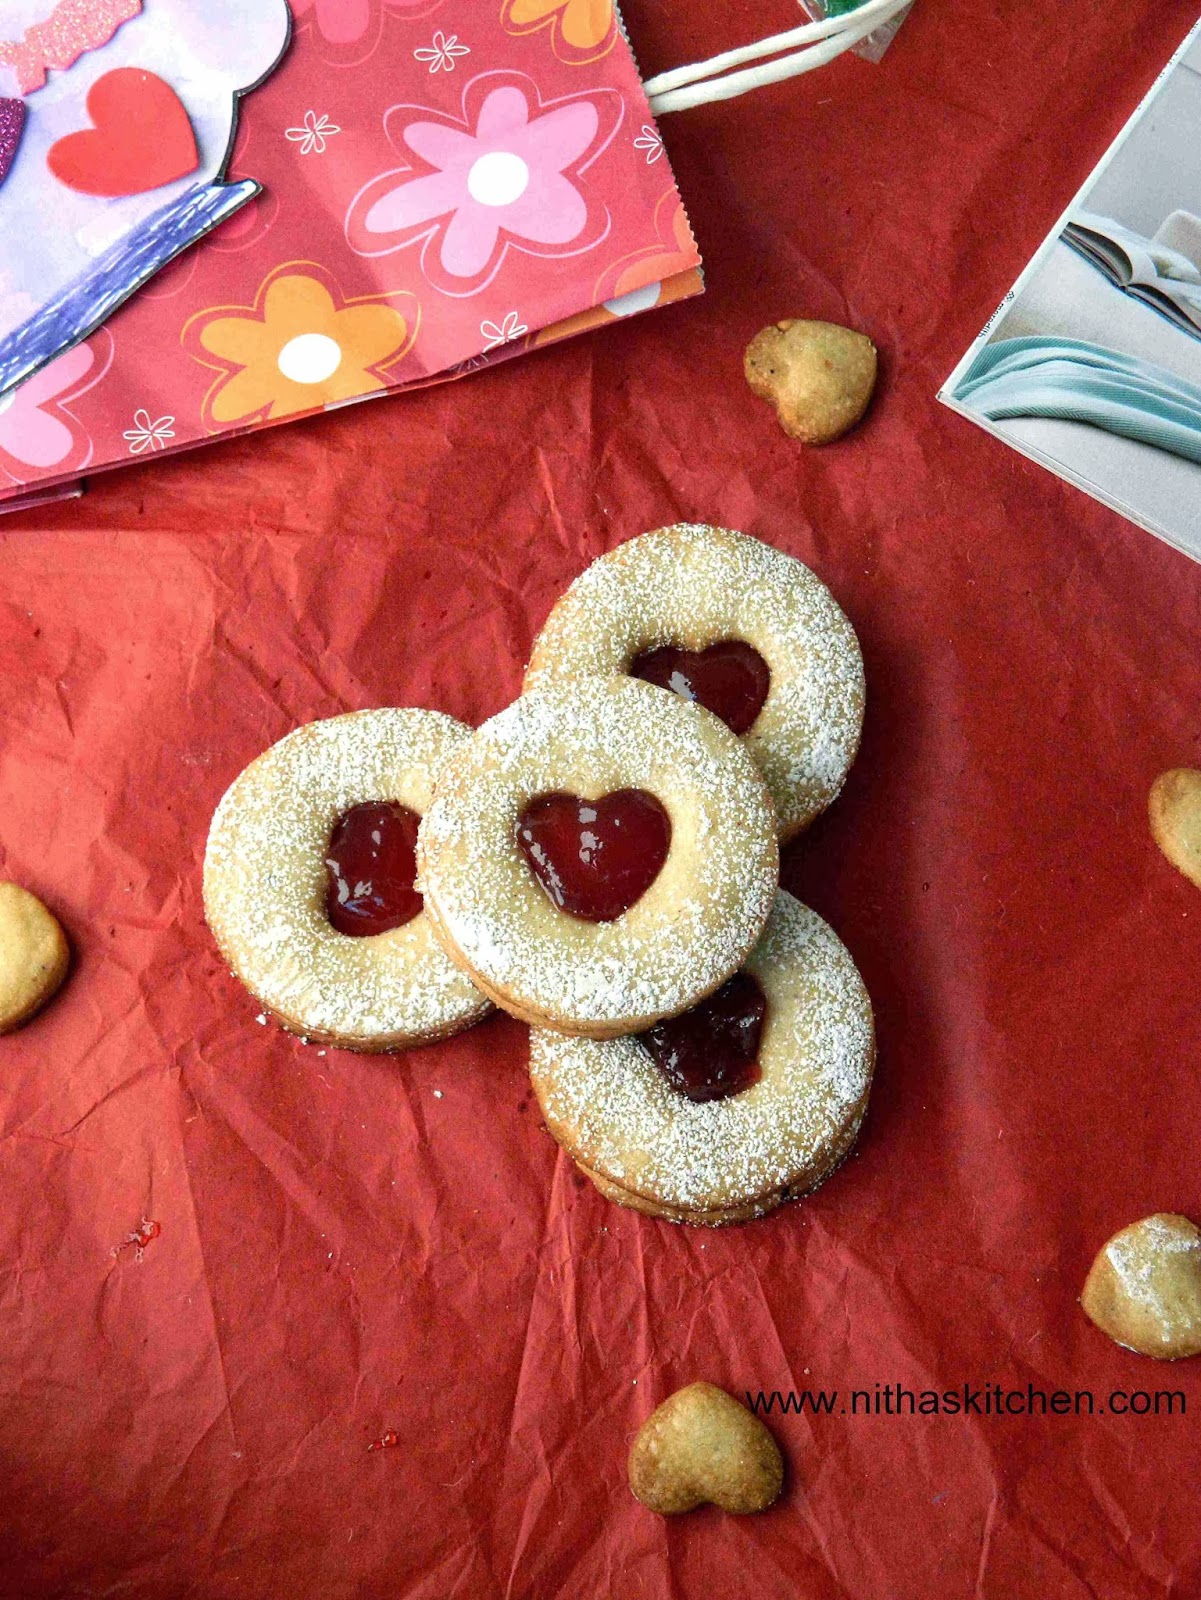 Eggless Linzer Cookies with Strawberry Jam Filling | Heart Shaped Almond Cookies Recipe